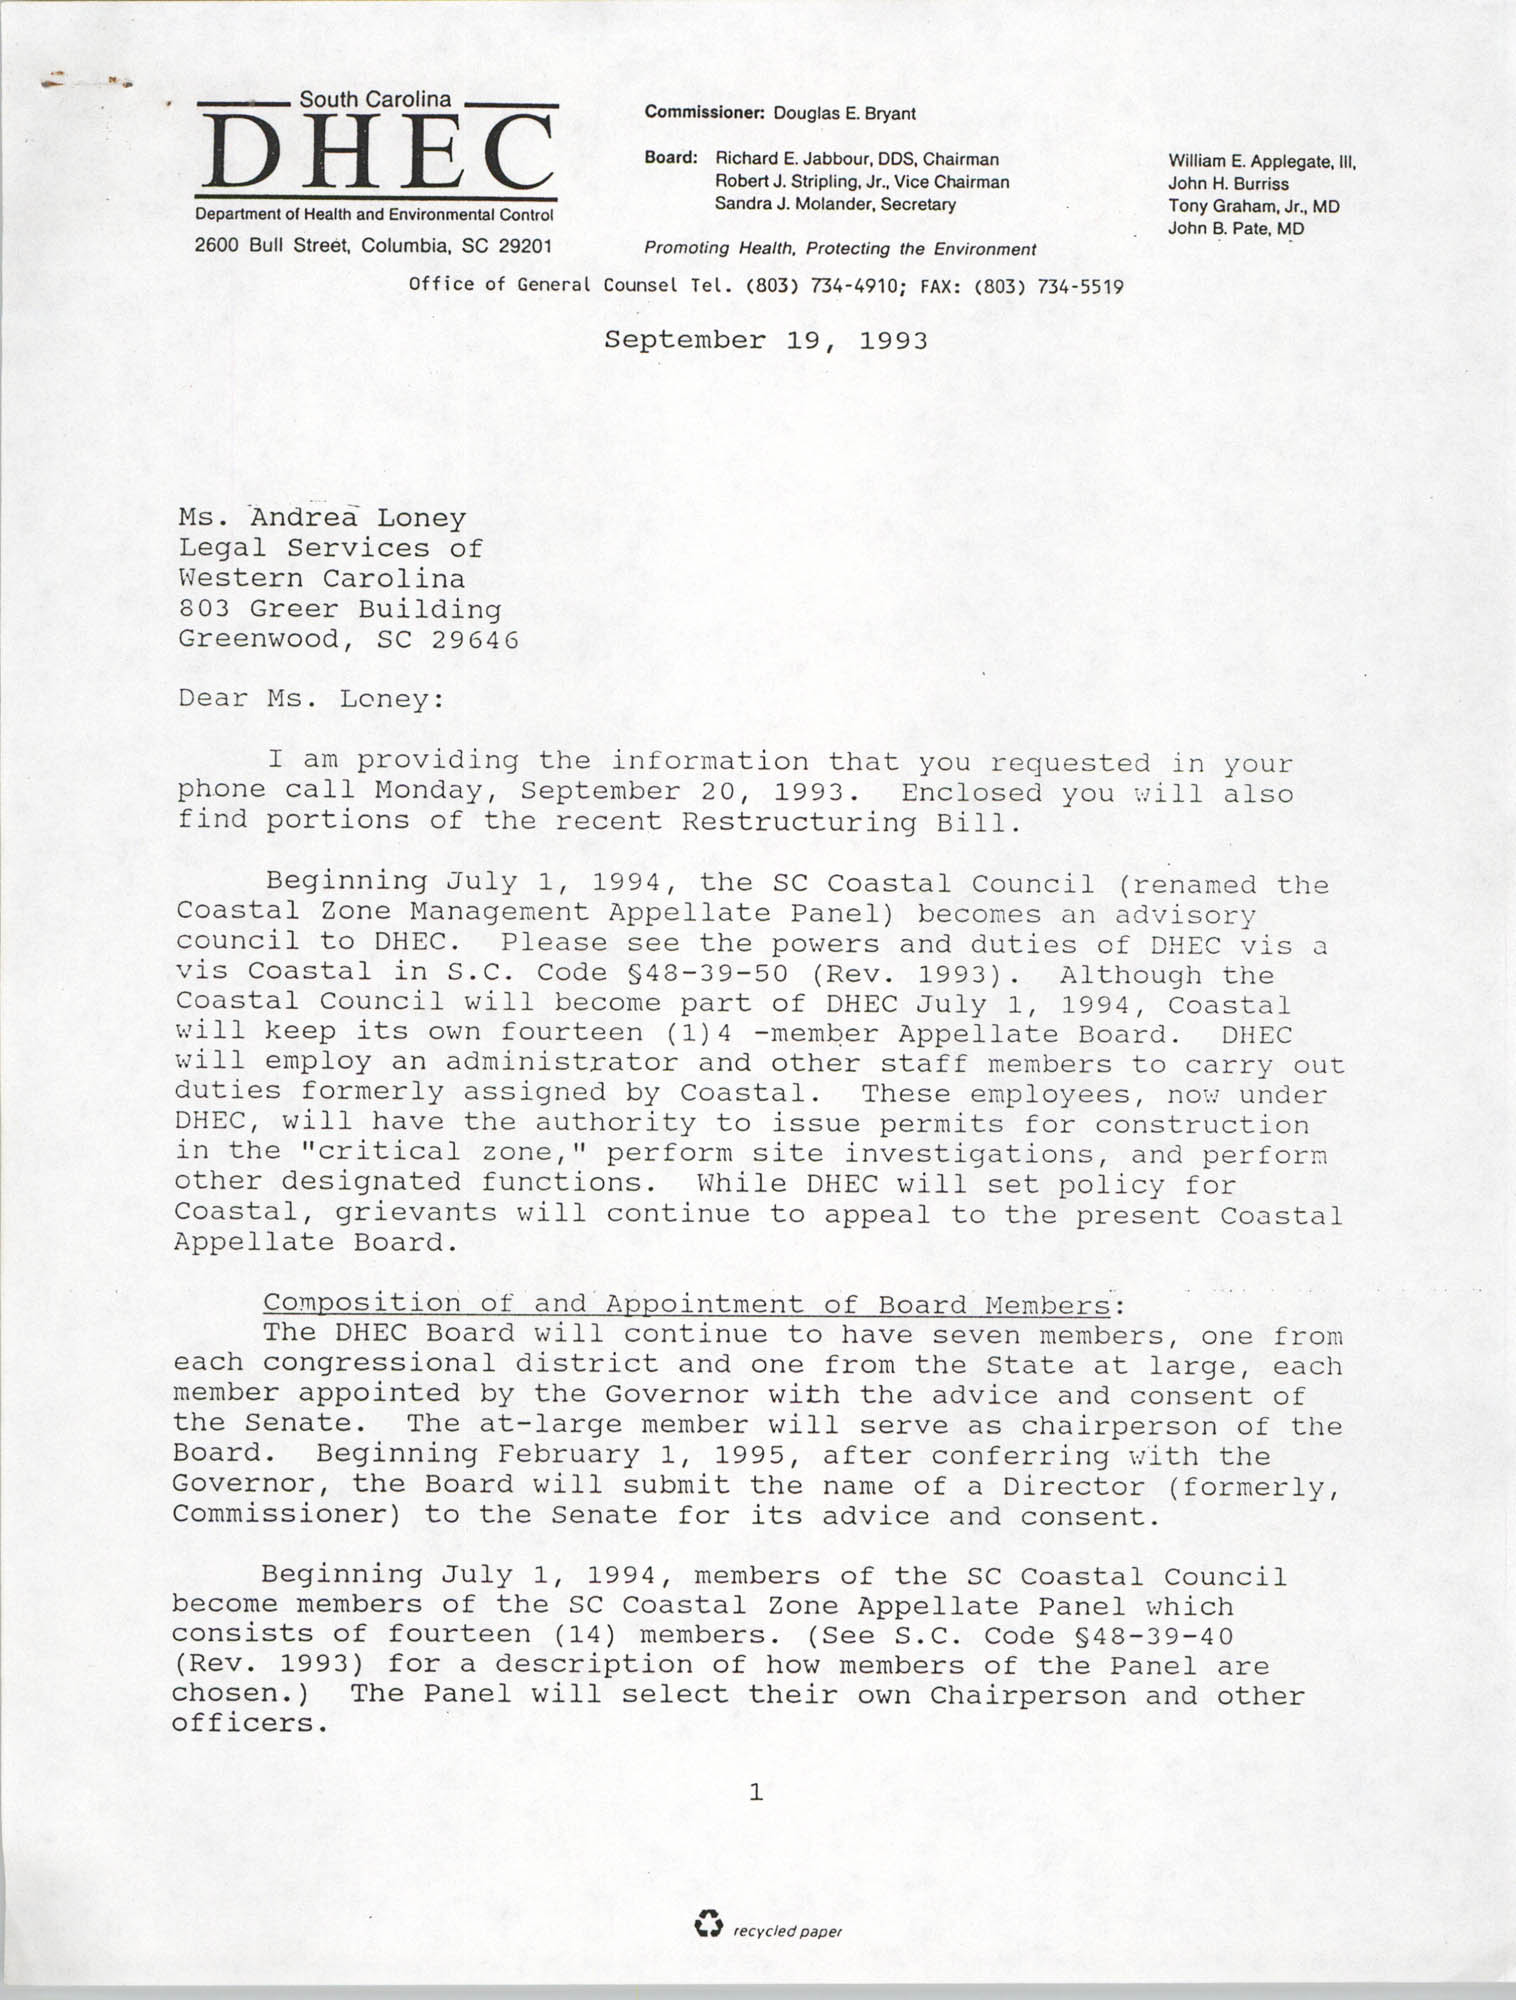 Letter from Nancy S. Layman to Andrea Loney, September 19, 1993, Page 1